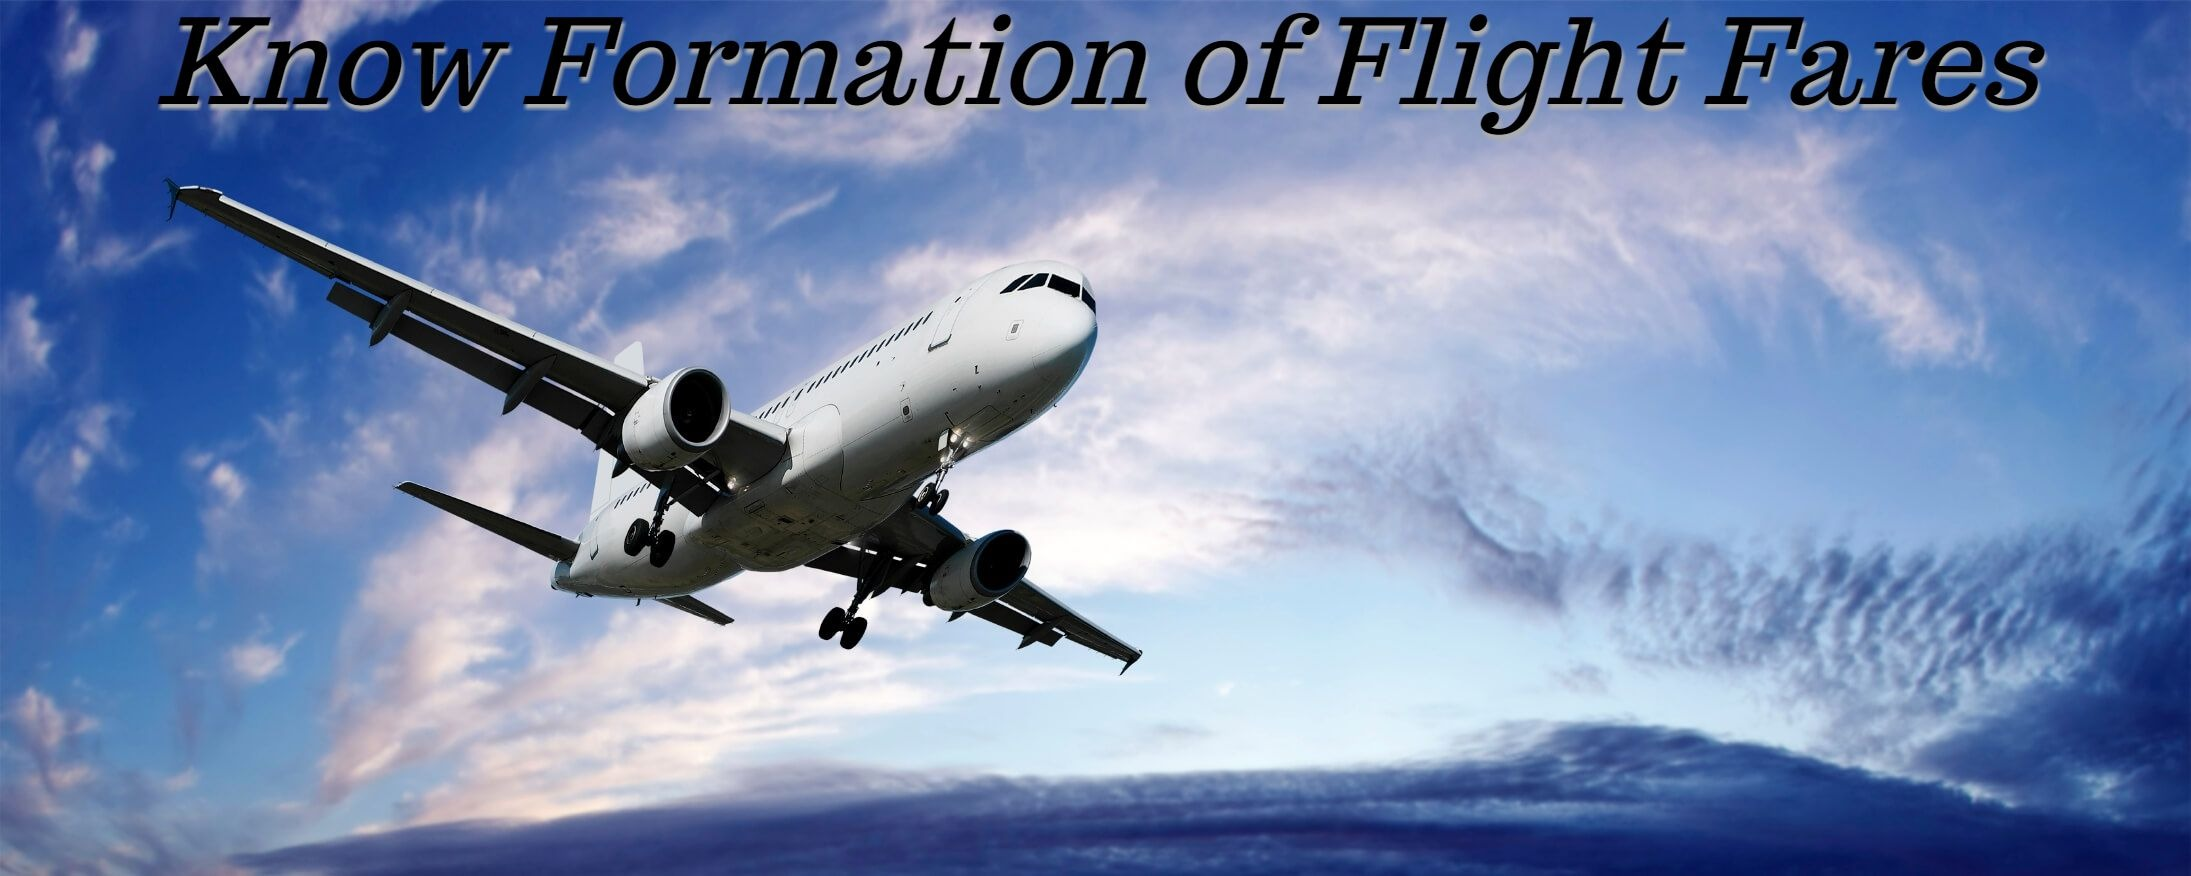 Curious to Know How the Flight Fares are Formed?